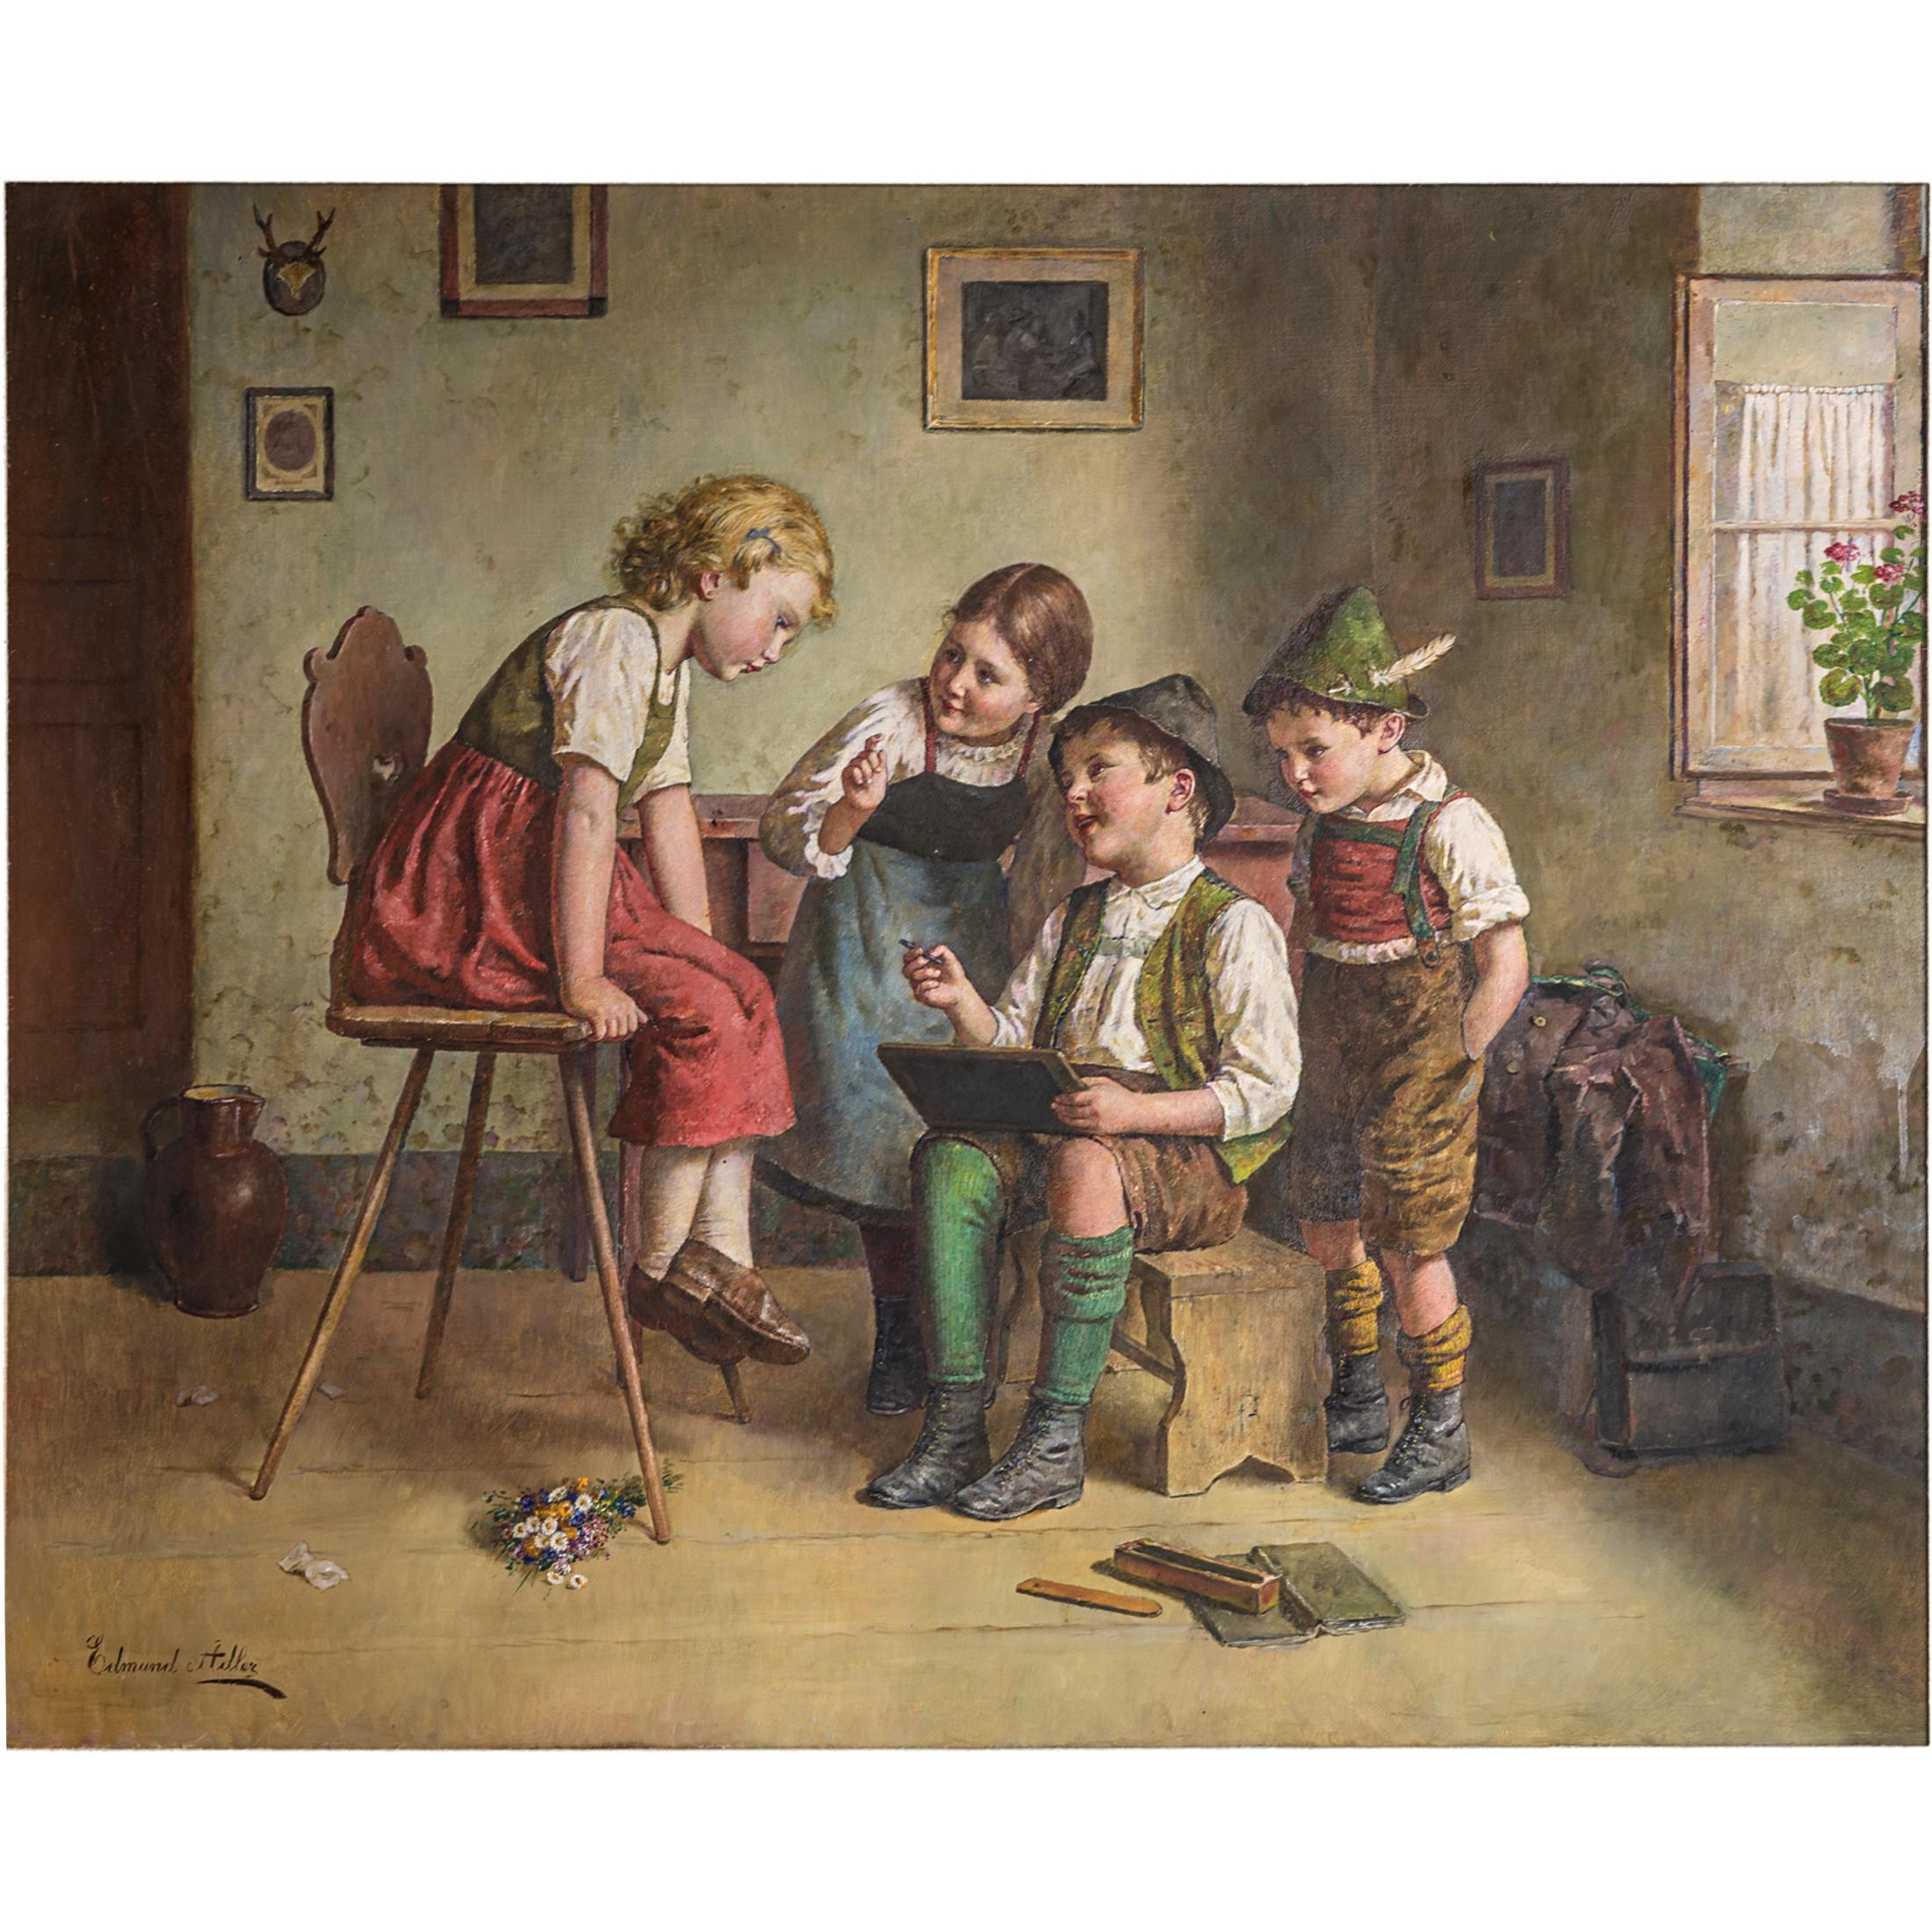 A fine Edmund Adler Painting of Children Gathered in a Parlor